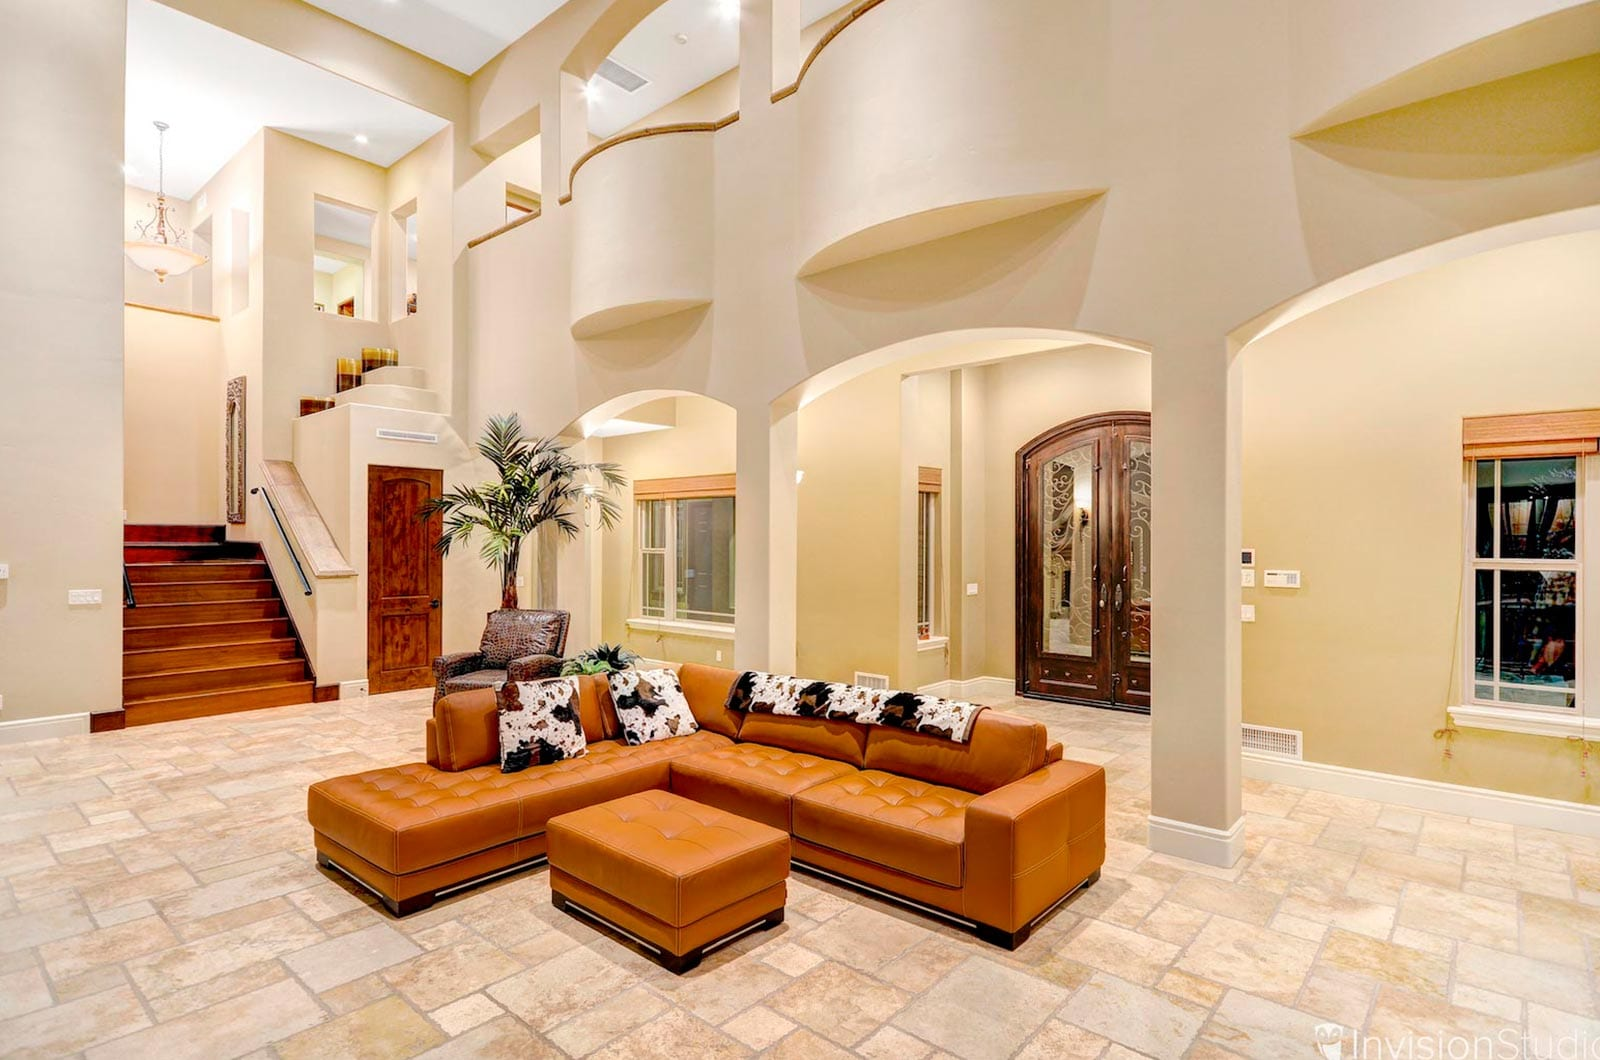 Luxury-Real-Estate-Photography-Featured-Image